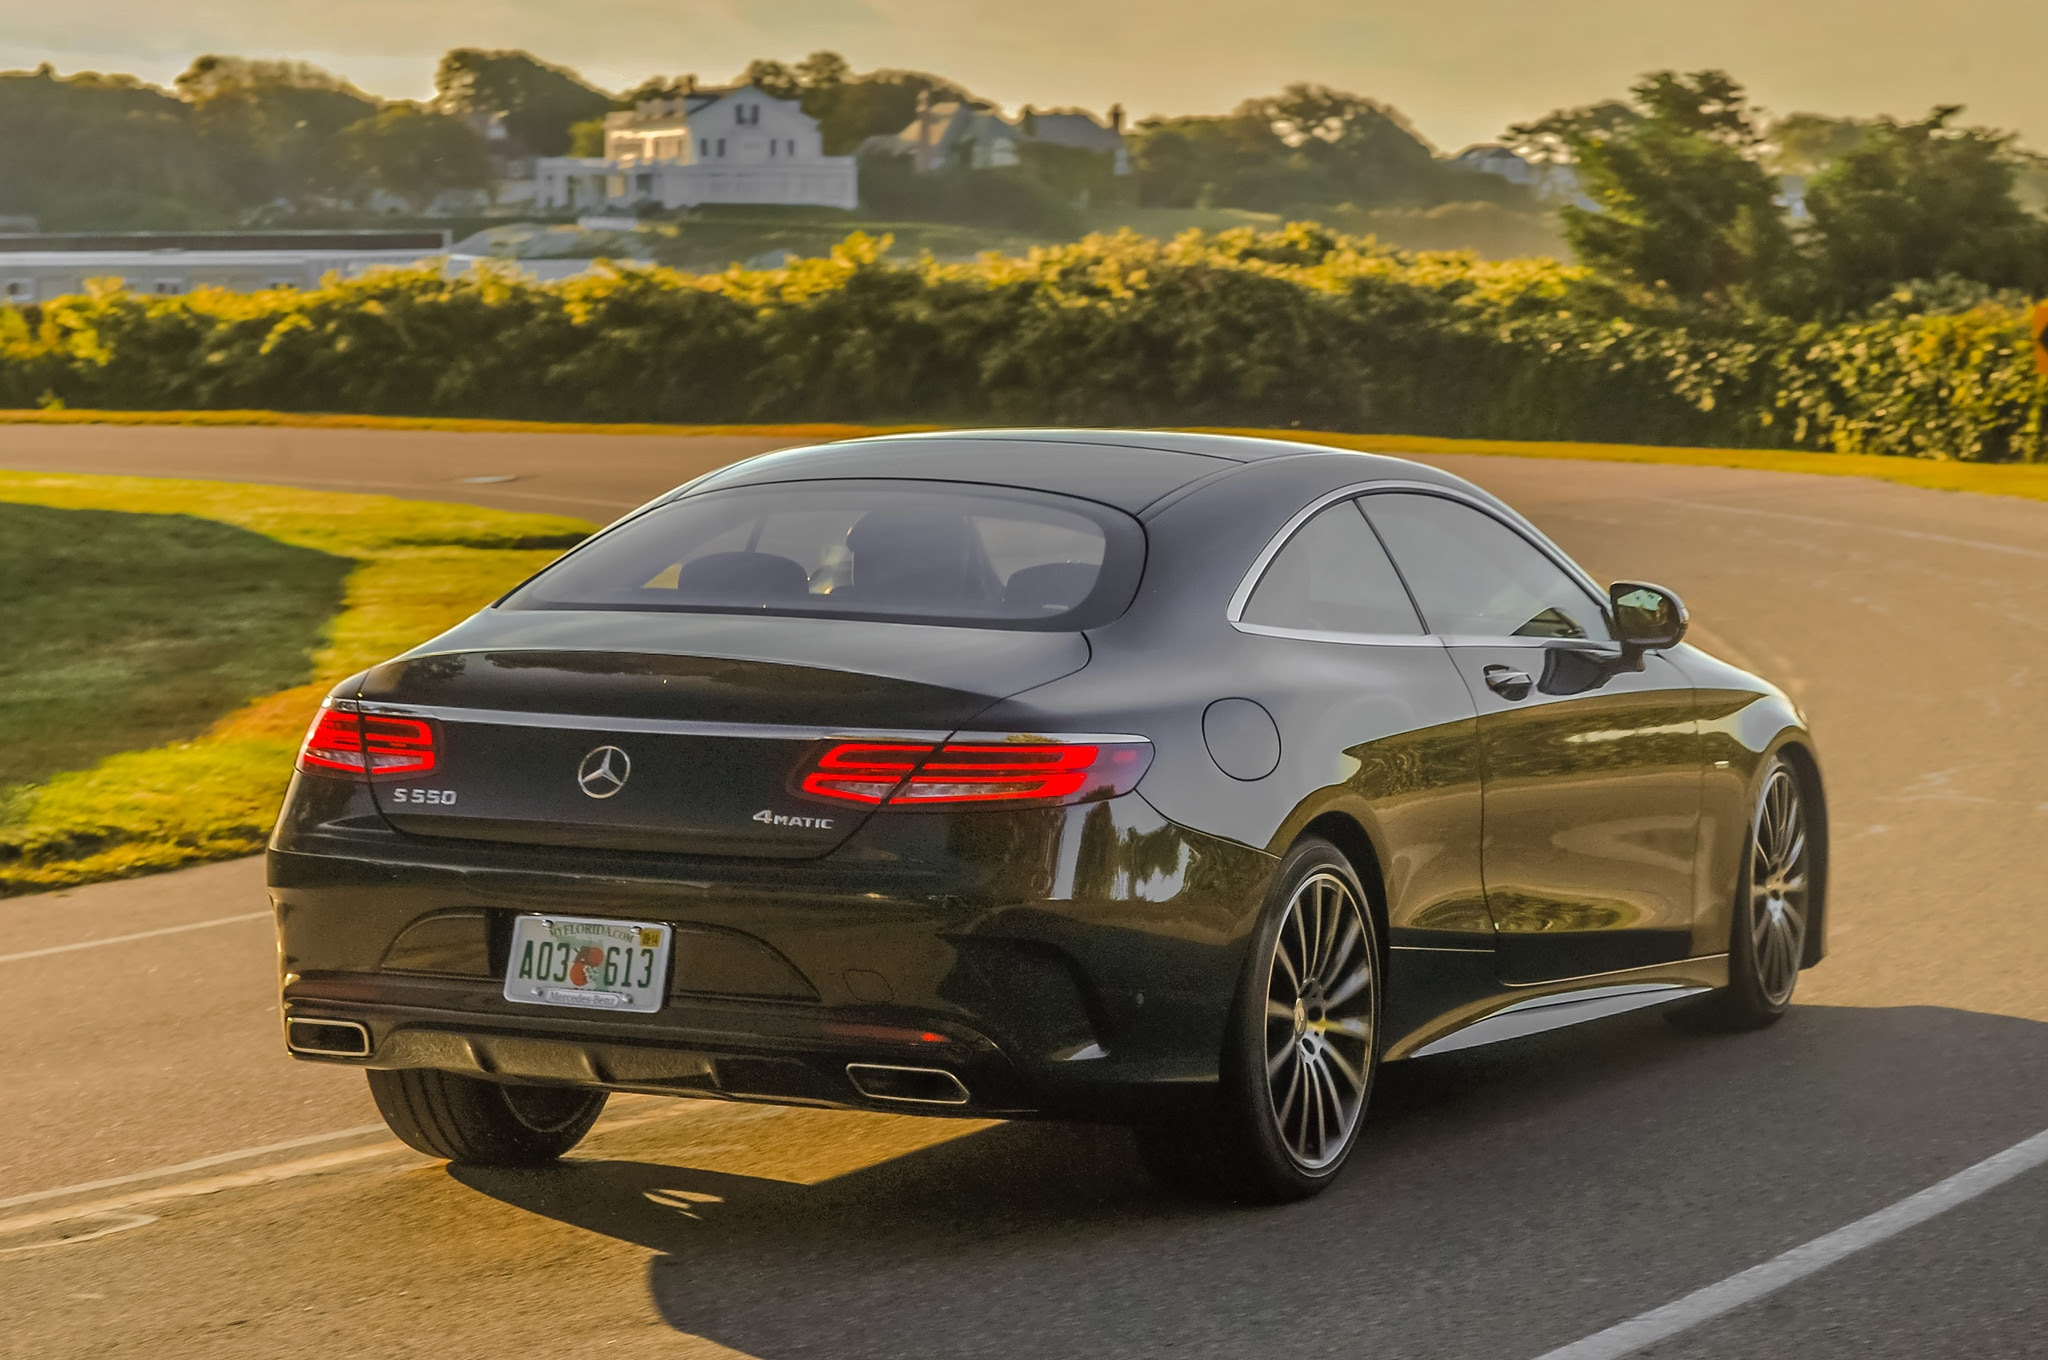 2015 Mercedes-Benz S550 4Matic Coupe Review